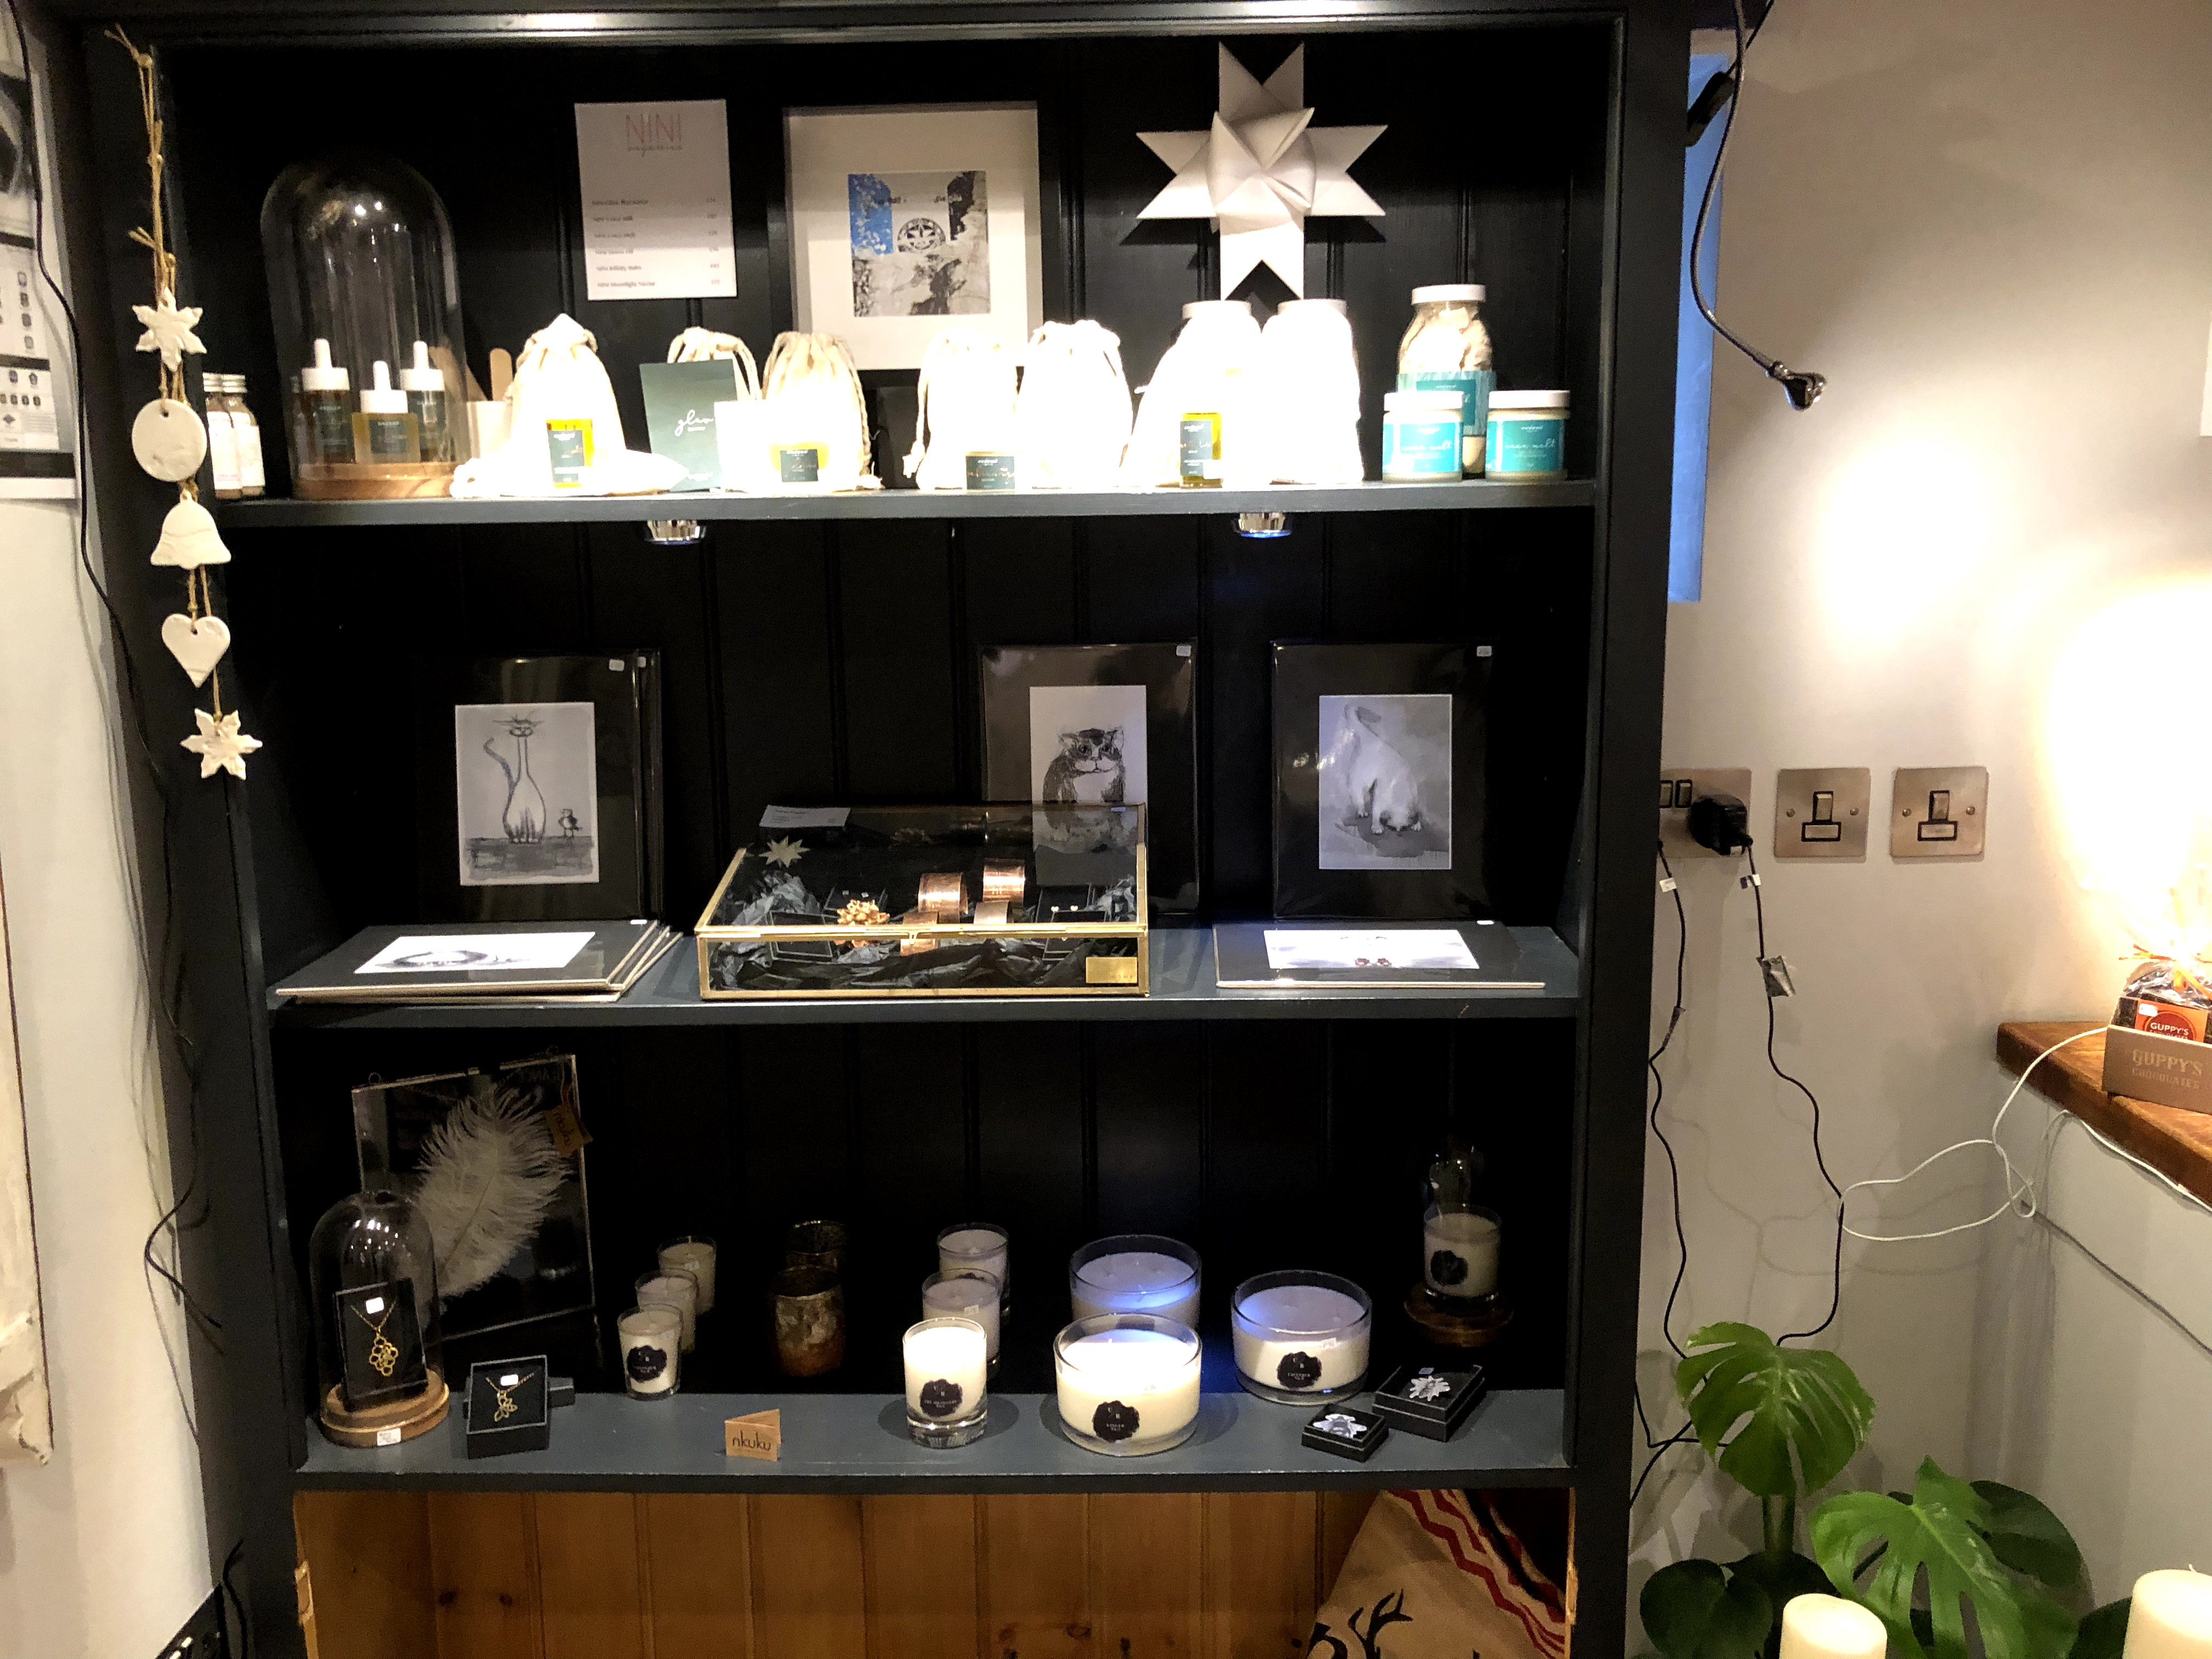 photo of shelves with jars, prints, and candles